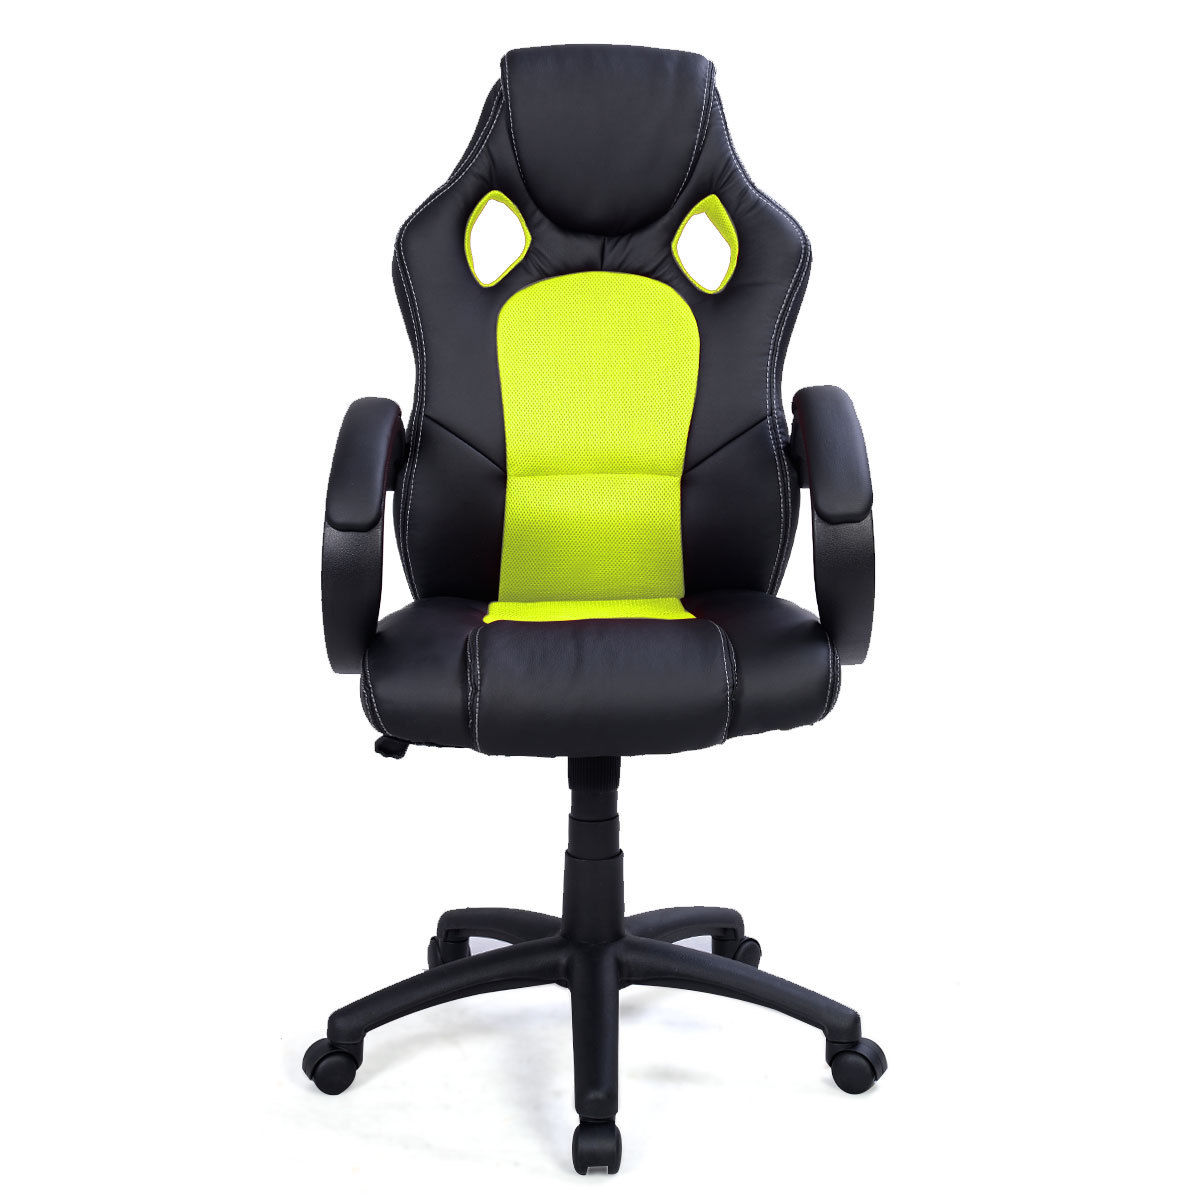 GHP 550Lbs Capacity Green Bucket Seat Racing Style Pneumatic Swivel Office Chair